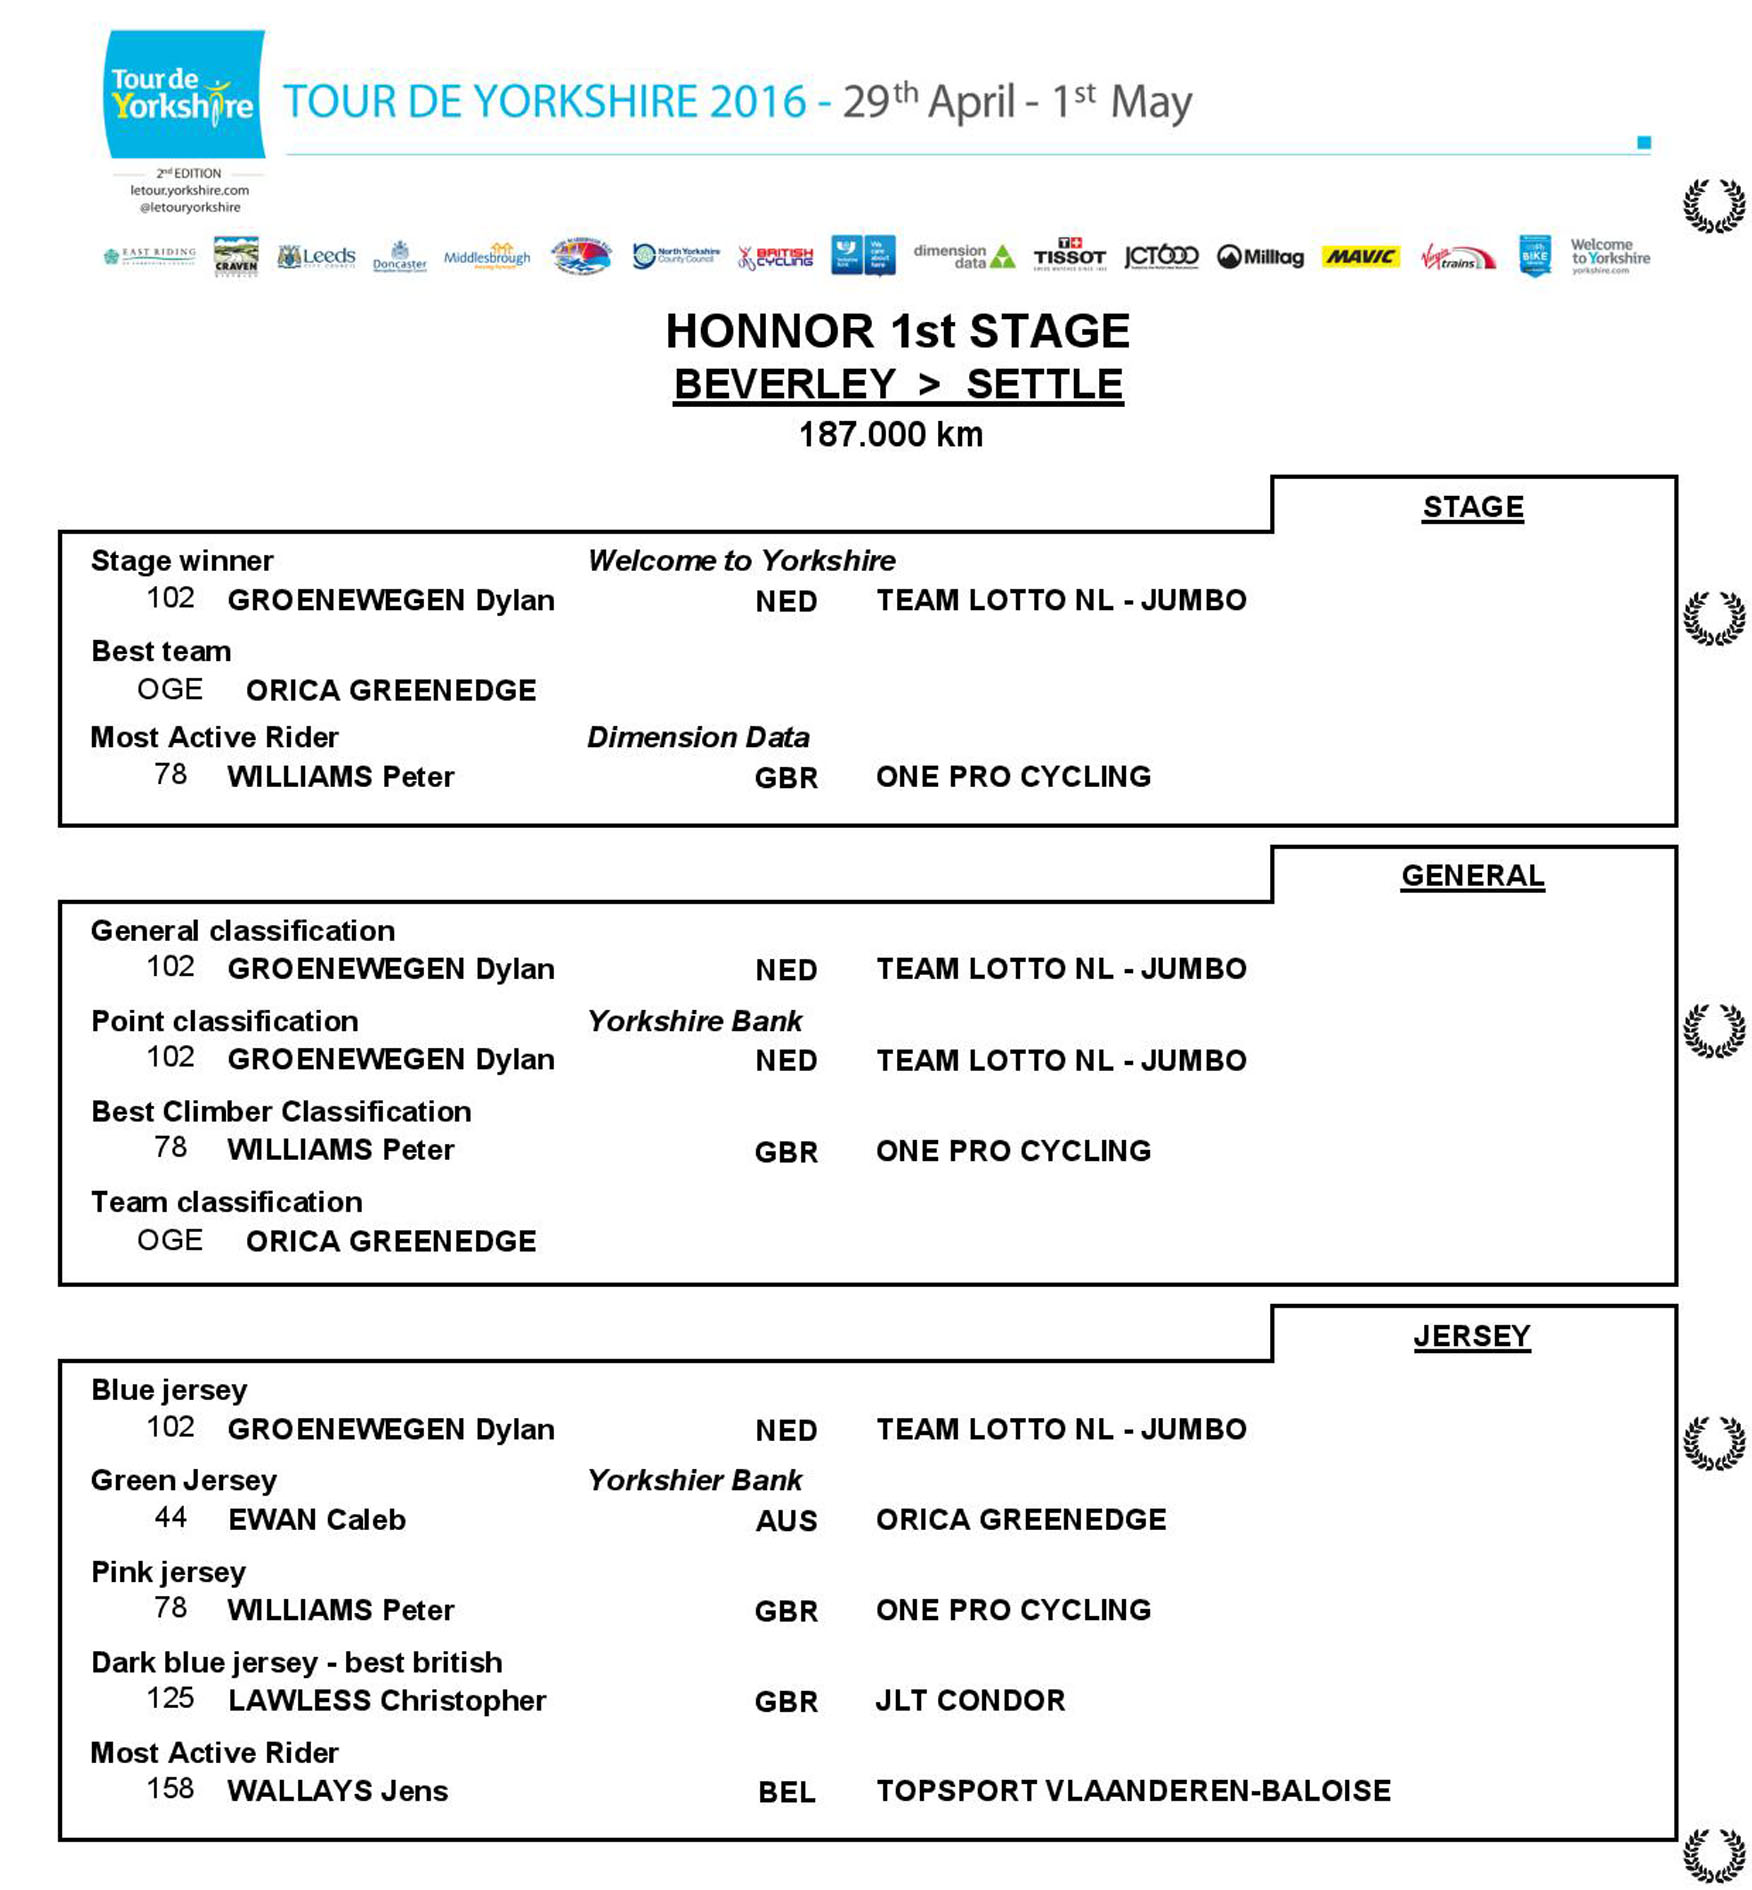 TdY2016_Stage1results-page-001 web